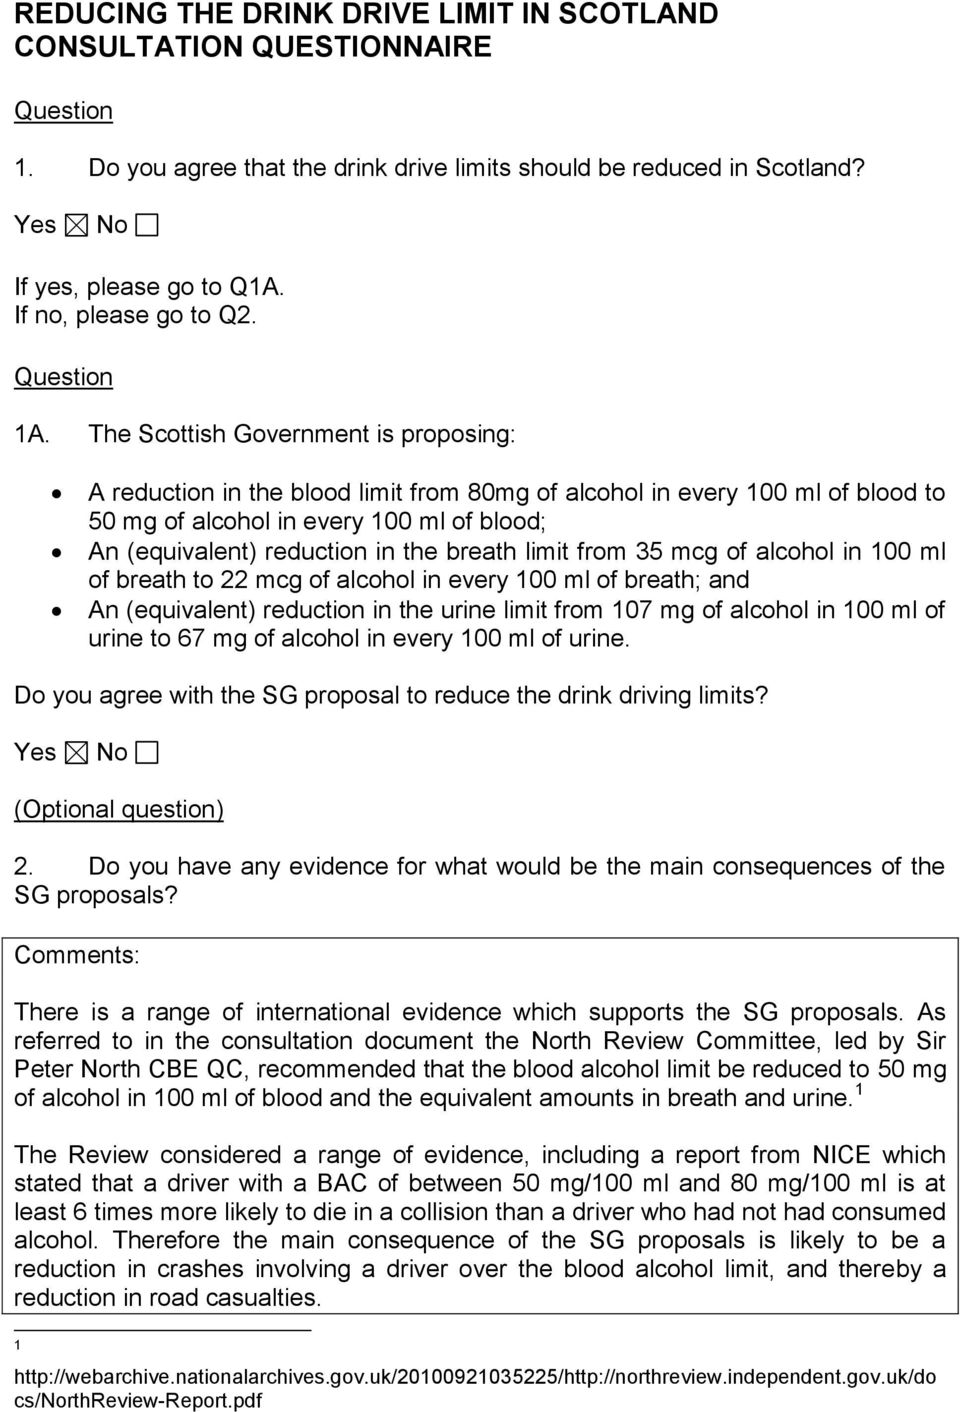 The Scottish Government is proposing: A reduction in the blood limit from 80mg of alcohol in every 100 ml of blood to 50 mg of alcohol in every 100 ml of blood; An (equivalent) reduction in the